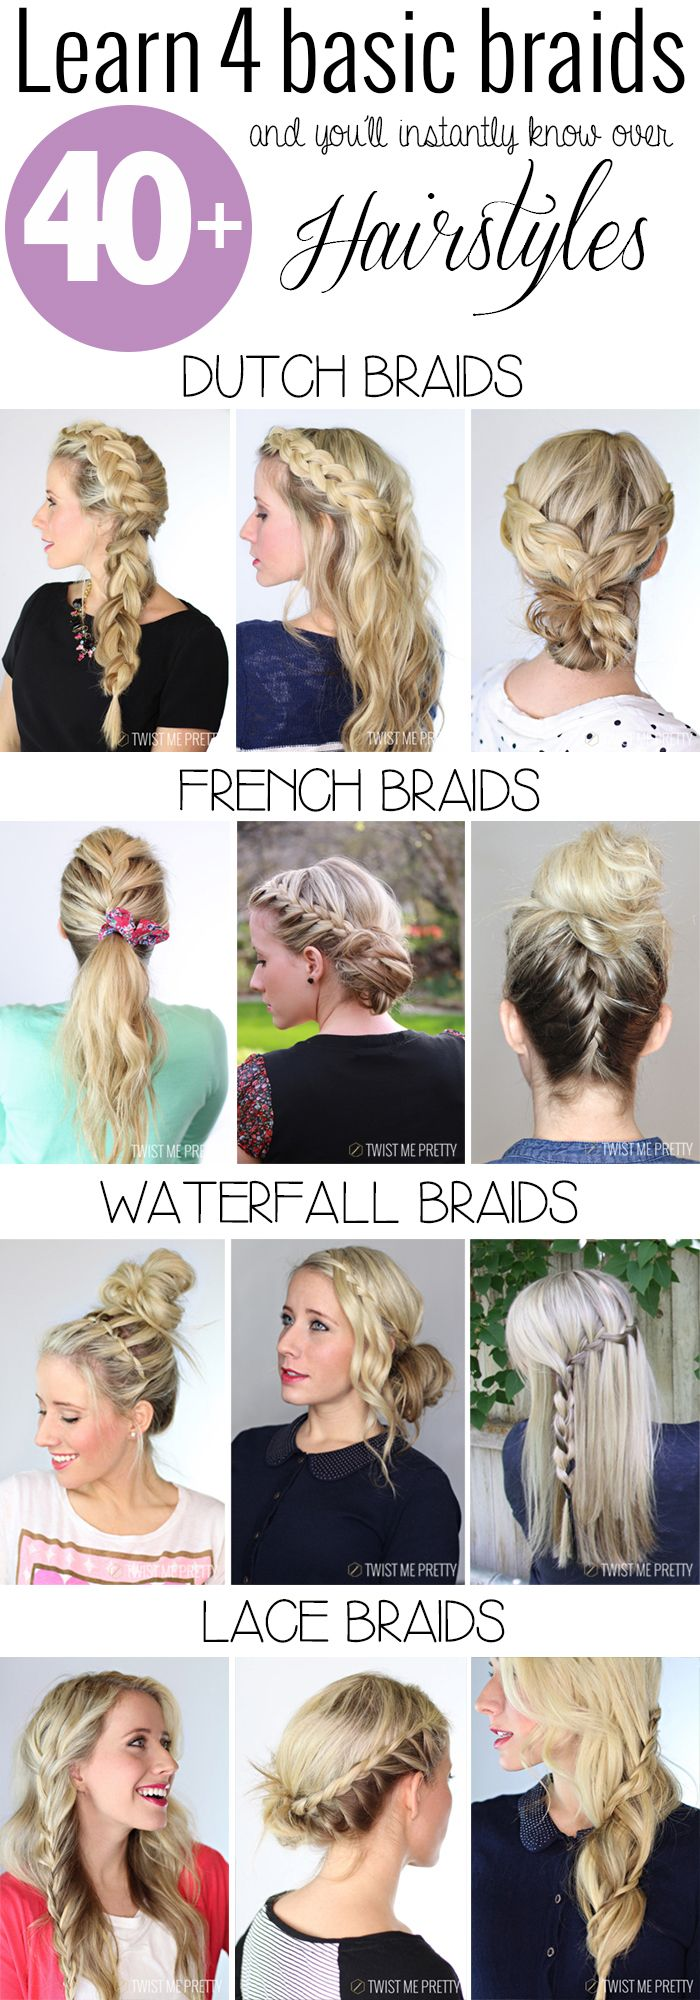 Twist Me Pretty is teaching the four basic braids which will help you learn over 40  new hairstyles!!  FREE DIY VIDEO + pictures = Happy Me